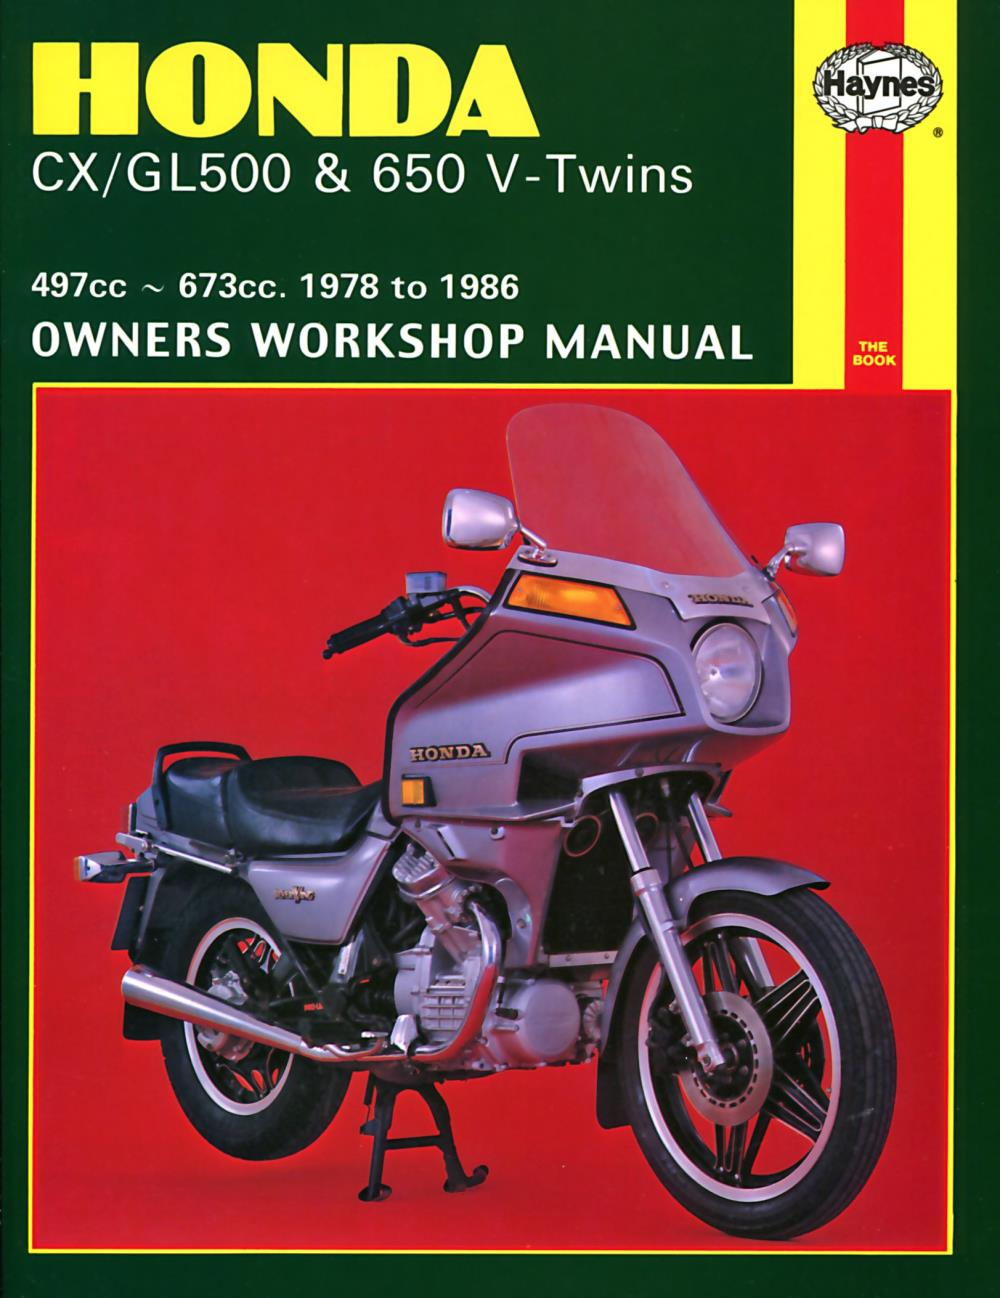 Honda Cx500 Turbo Parts For Sale: Manual Haynes For 1983 Honda CX 650 ED Eurosport